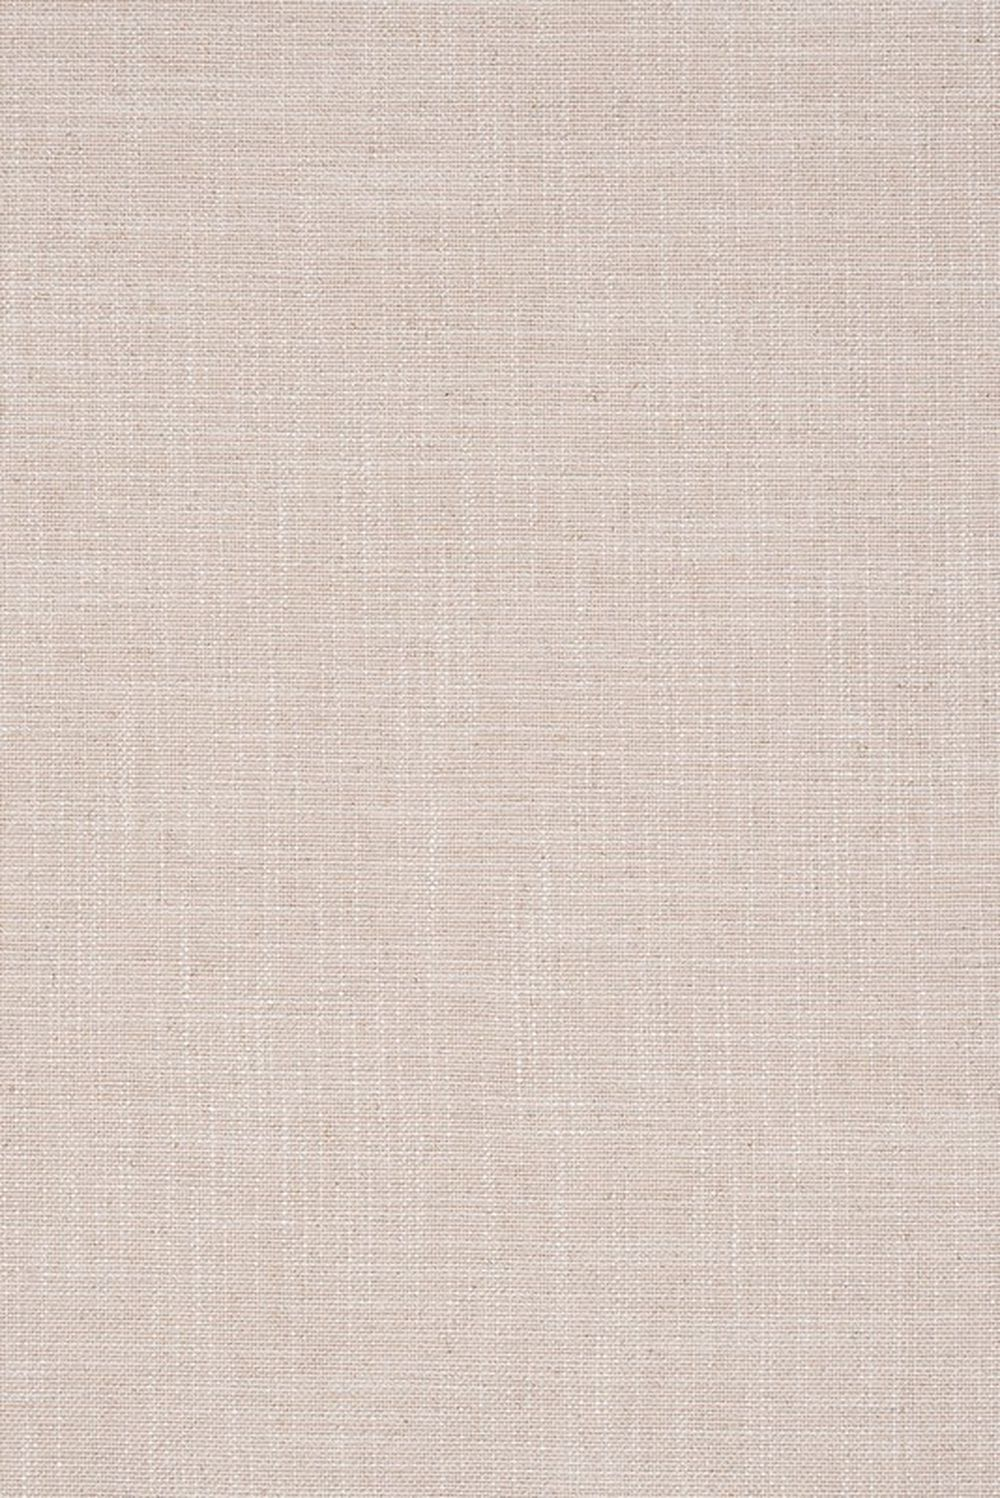 Photo of the fabric Allium Blush swatch by Mokum. Use for Upholstery Heavy Duty, Accessory. Style of Plain, Texture